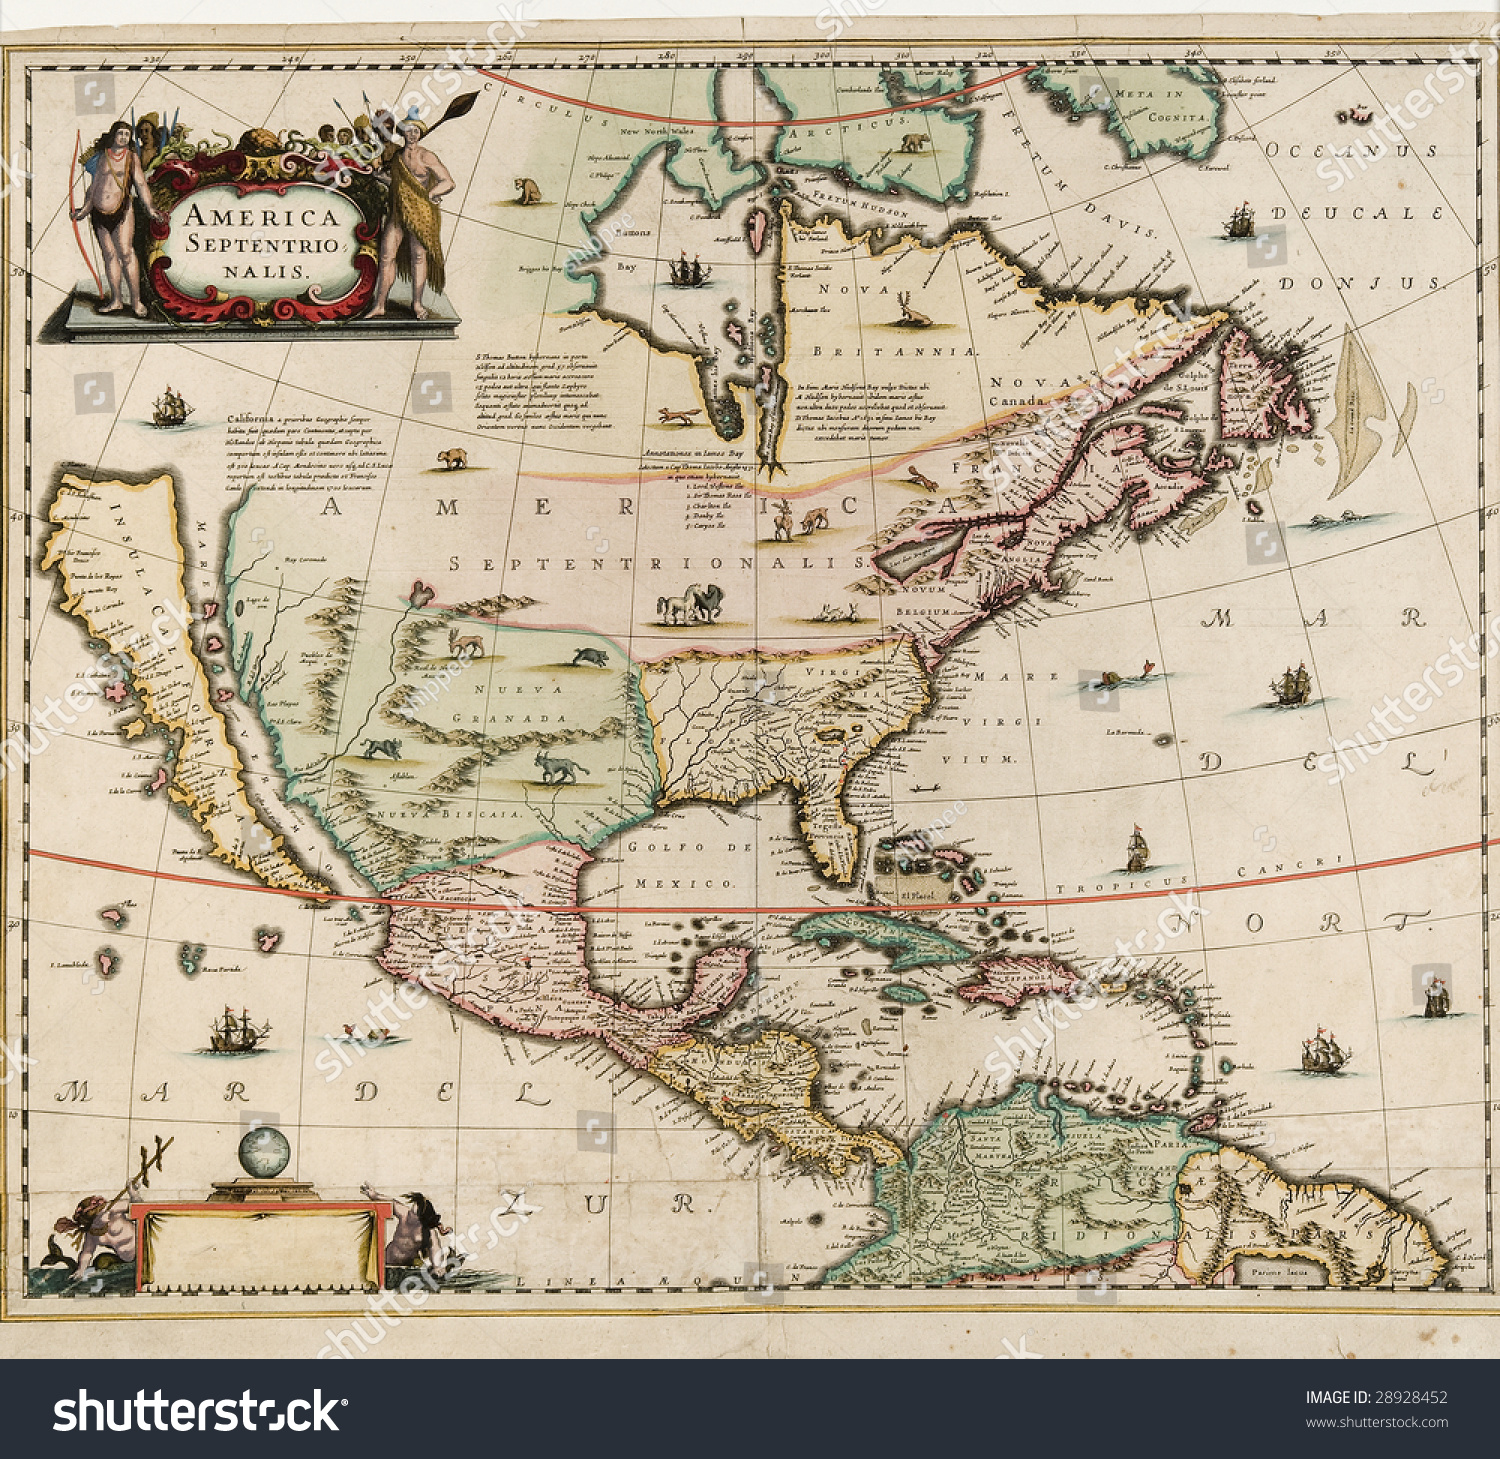 Old world map america septentrio nalis stock photo royalty free old world map america septentrio nalis probably dates around early 1600s showing north america gumiabroncs Images